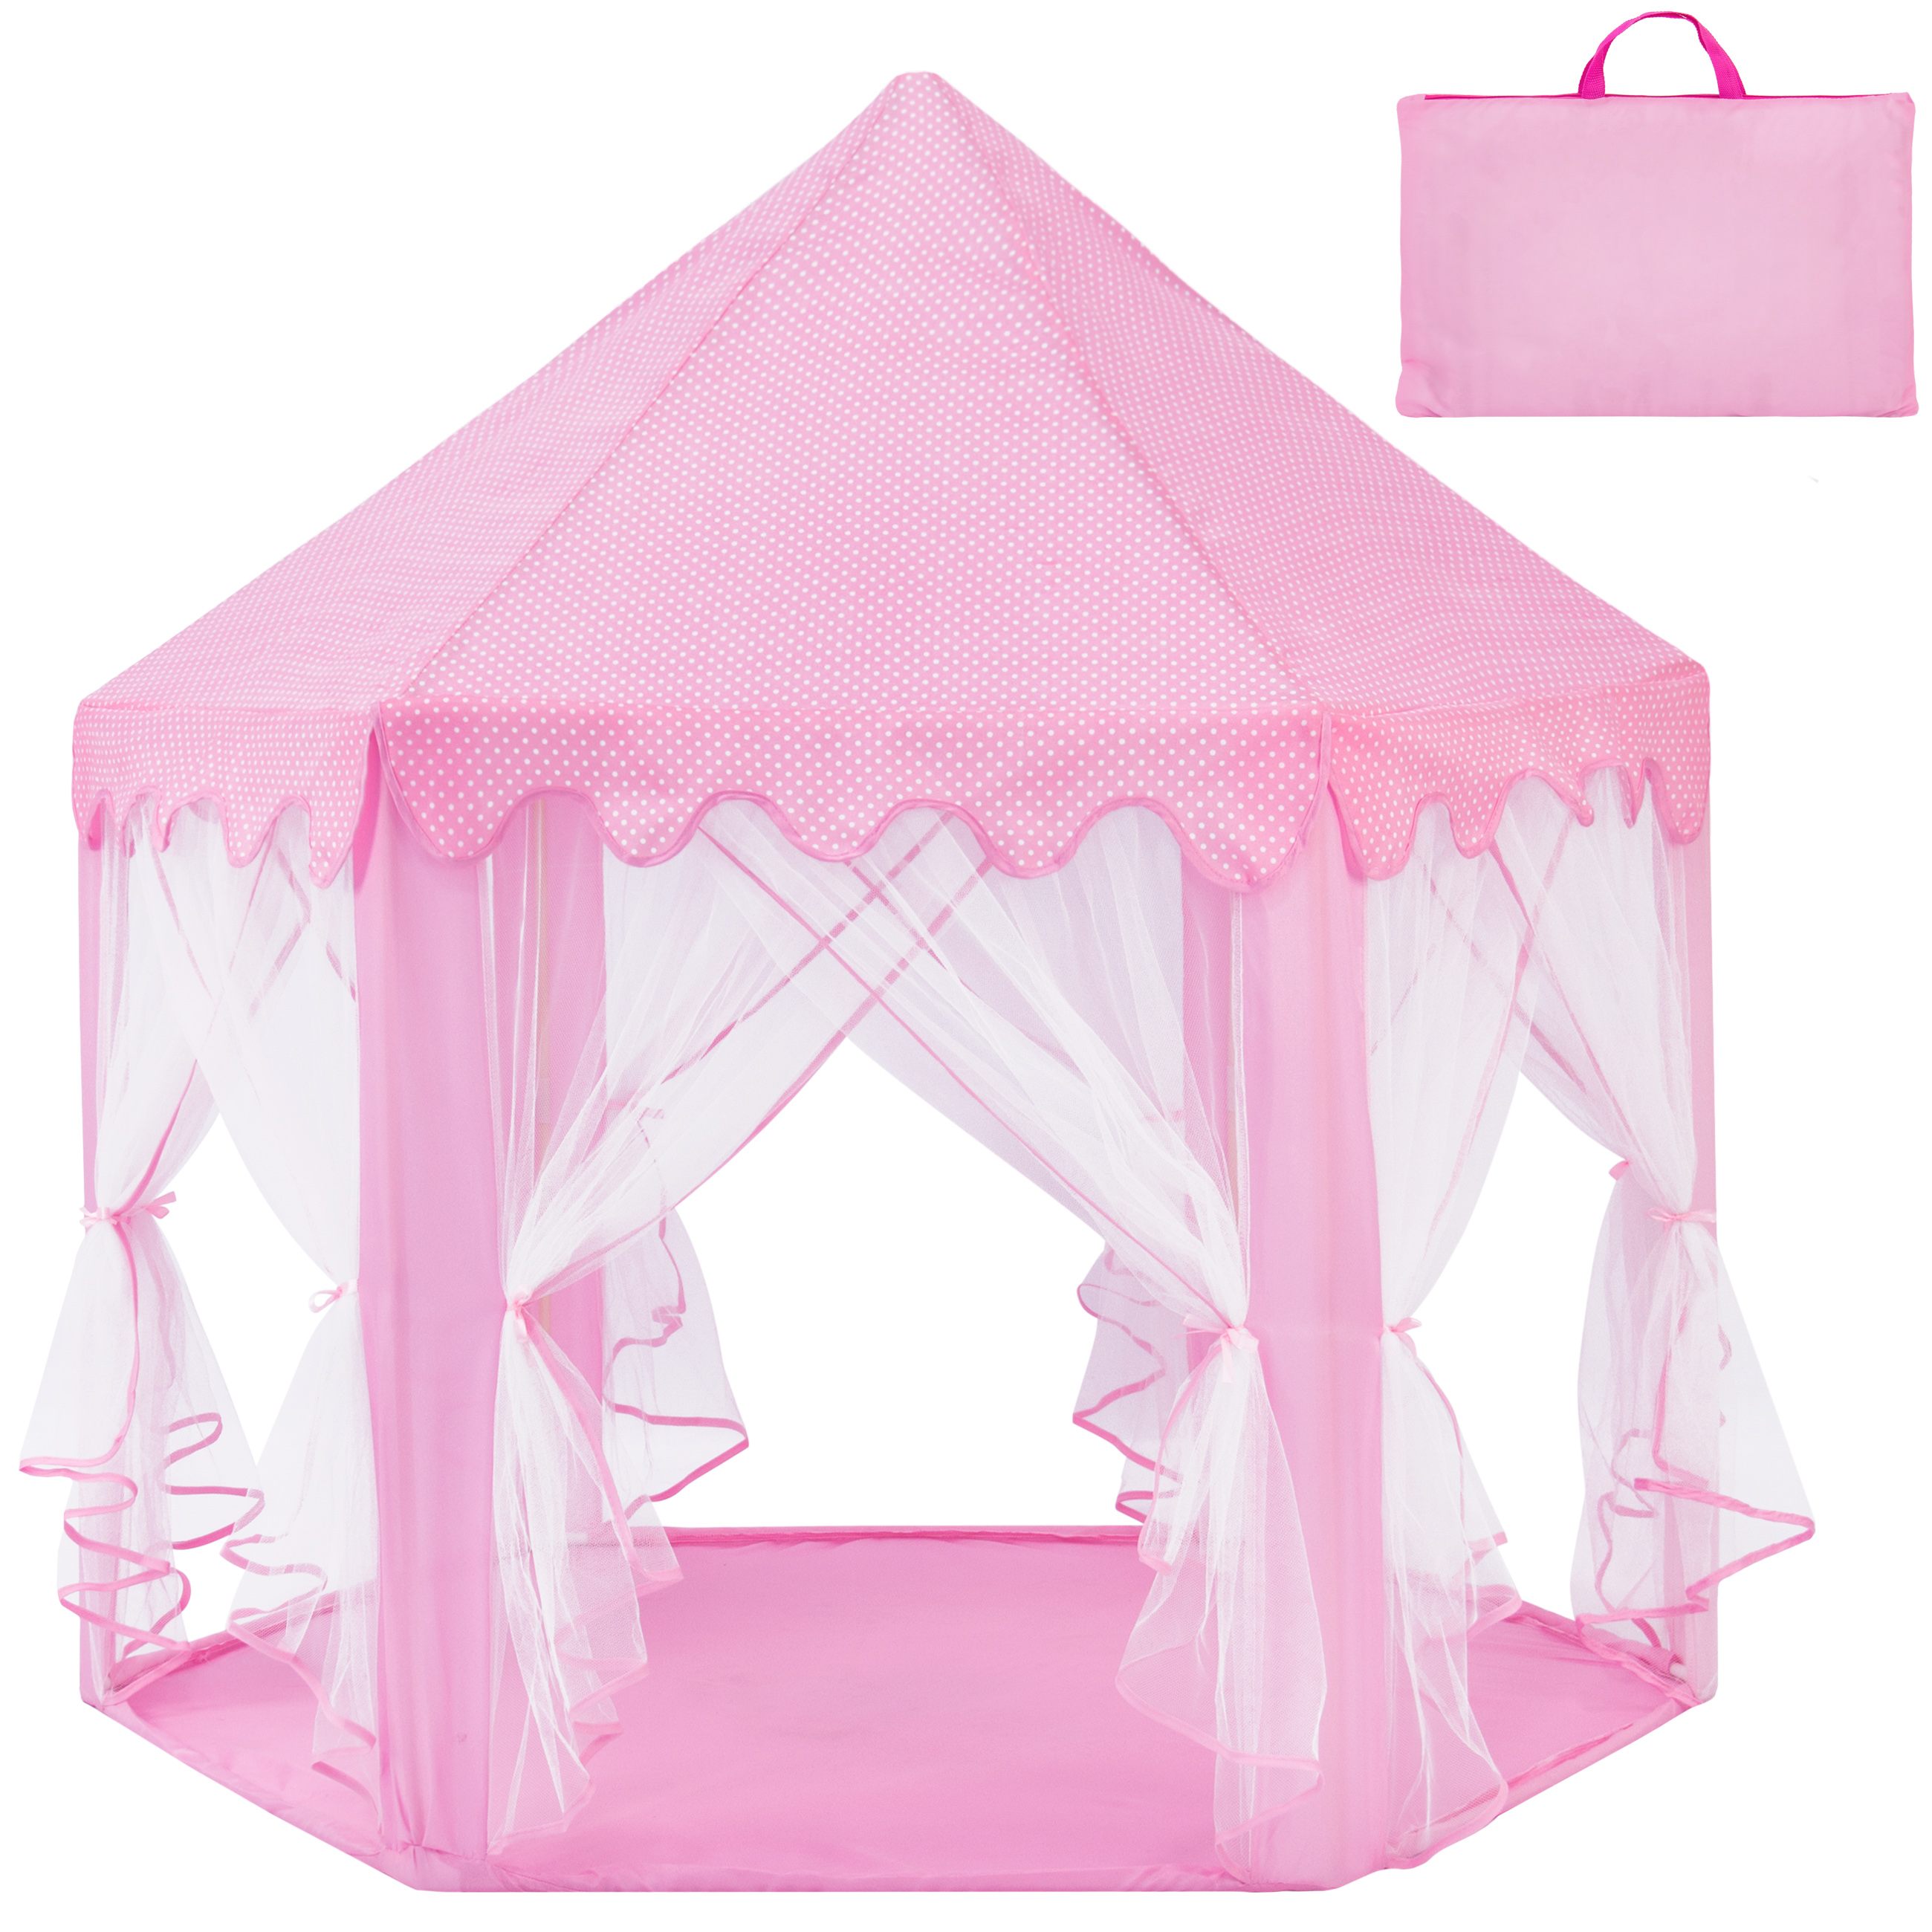 Best Choice Products Indoor/Outdoor Folding Deluxe Pop-Up Hexagon Princess Castle Play Tent  sc 1 st  Walmart & Best Choice Products Indoor/Outdoor Folding Deluxe Pop-Up Hexagon ...